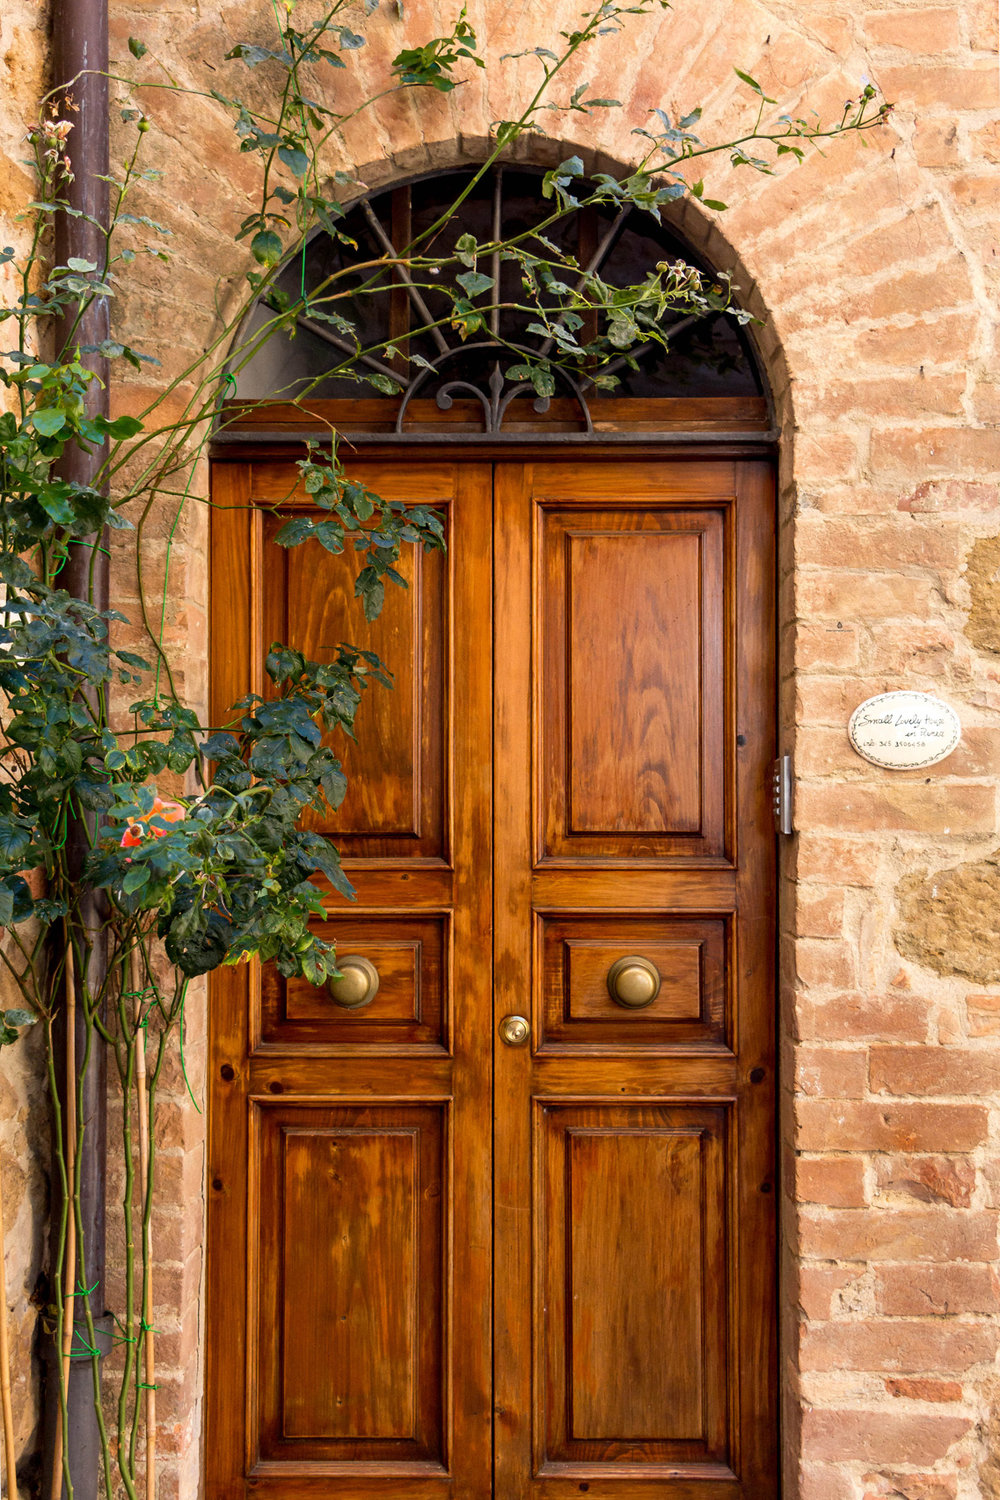 Pretty doors of Pienza, Tuscany